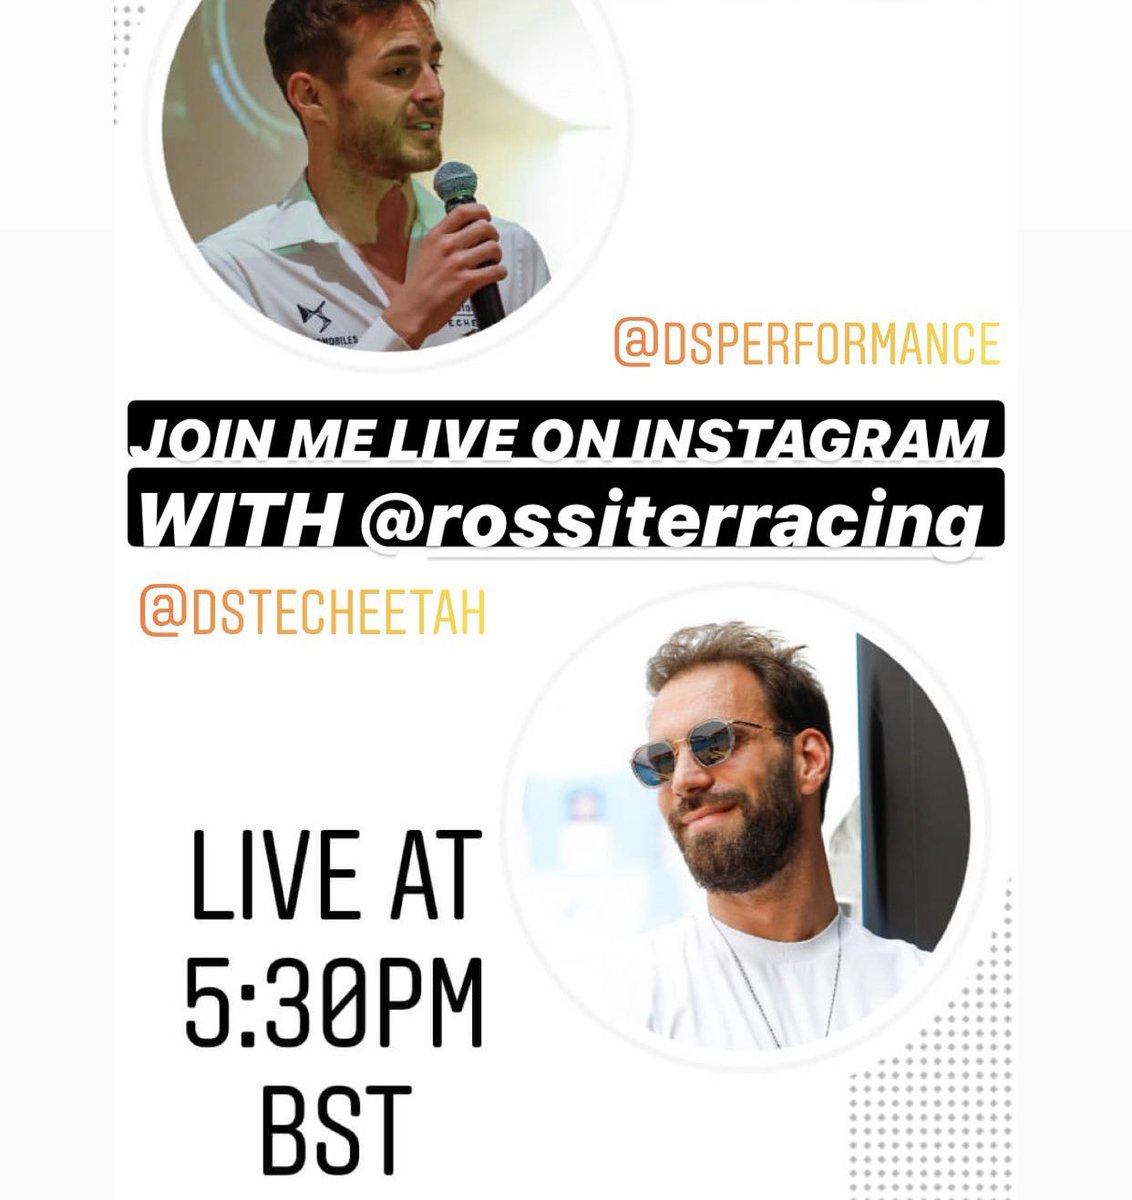 LIVE at 5:30PM BST on my Instagram & @DS_Performance with @Rossiterracing :  https://t.co/YVl2WCjMeb  #DSTecheetah #LIVE #InstaLive #ABBFormulaE #JEV25 #DSPerformance #DSAutomobiles https://t.co/cfFwKnaHnj